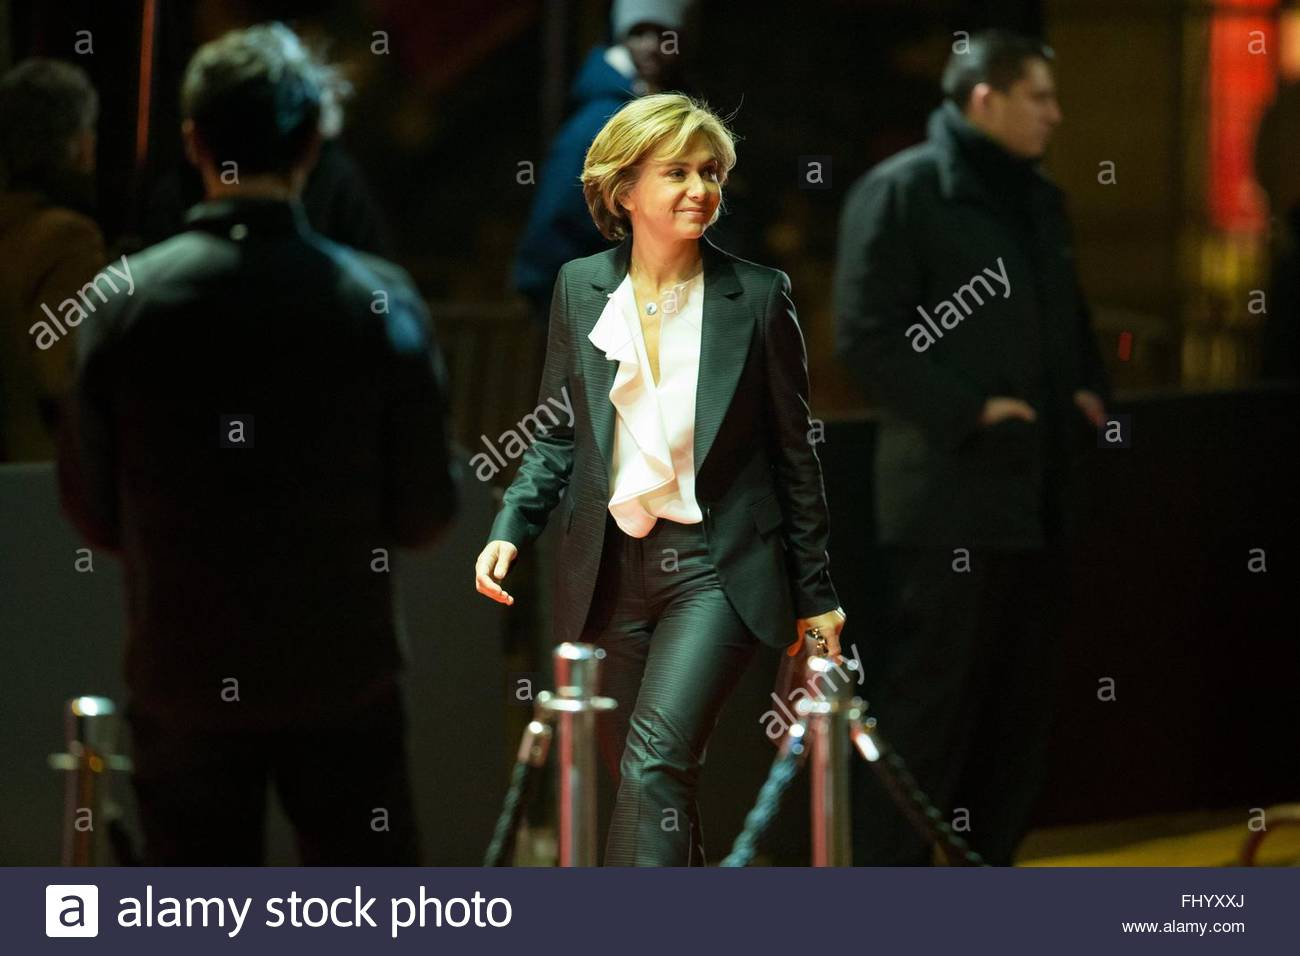 Paris, France. February 26th, 2016. FRANCE, Paris: French President of the Regional Council of Ile-de-France Valerie Stock Photo